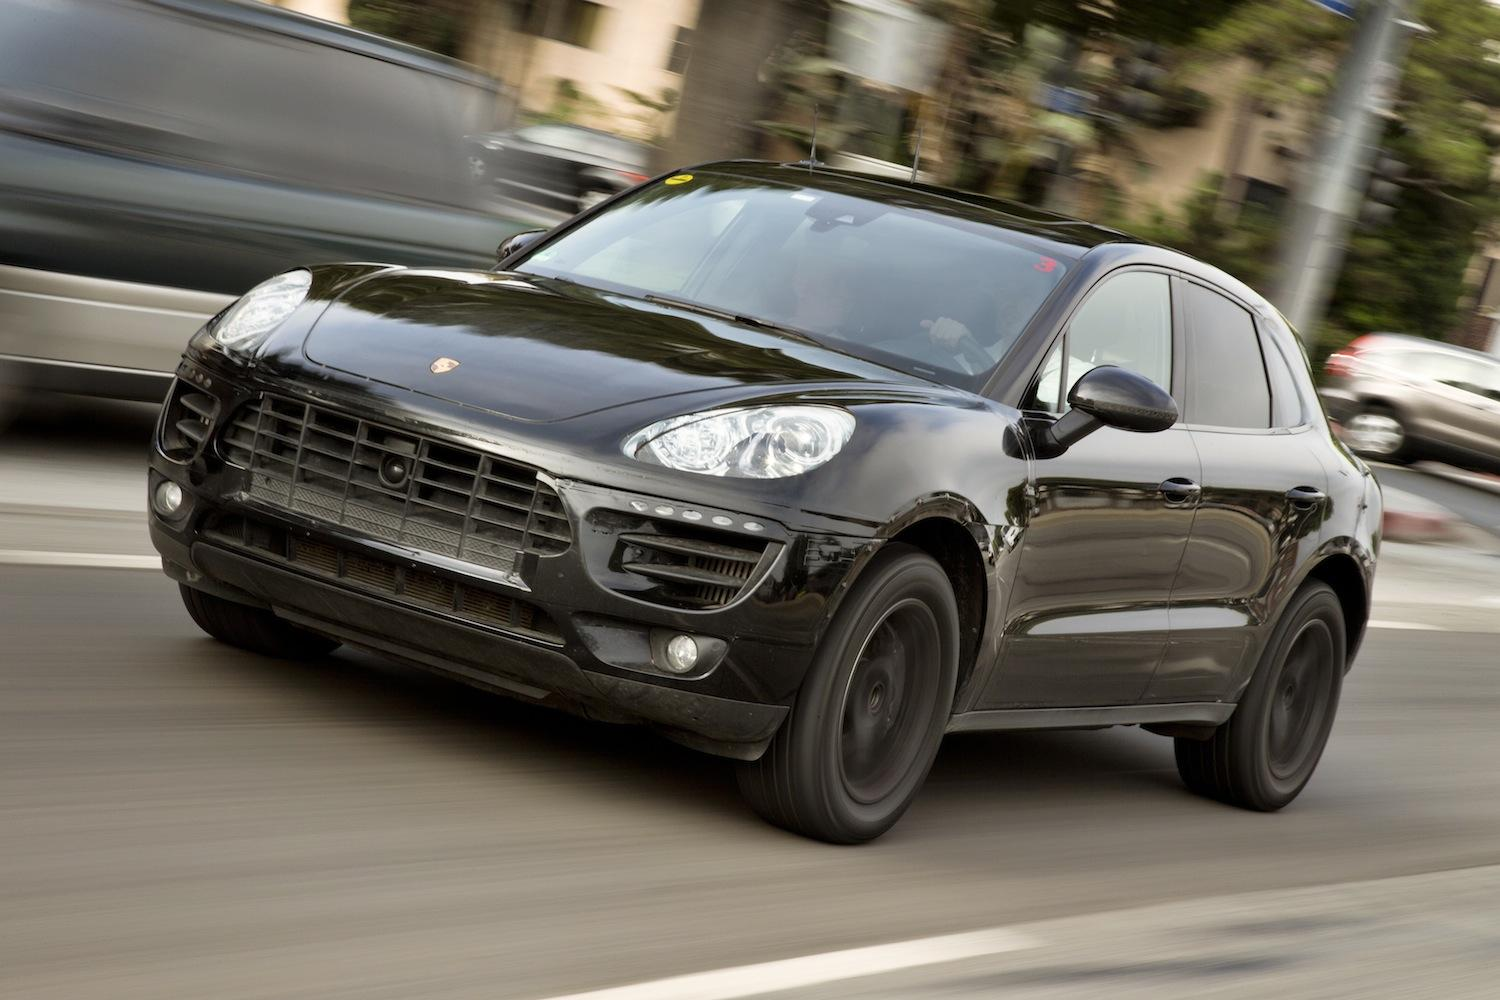 2013 la auto show 2015 porsche macan specs leaked digital trends. Black Bedroom Furniture Sets. Home Design Ideas